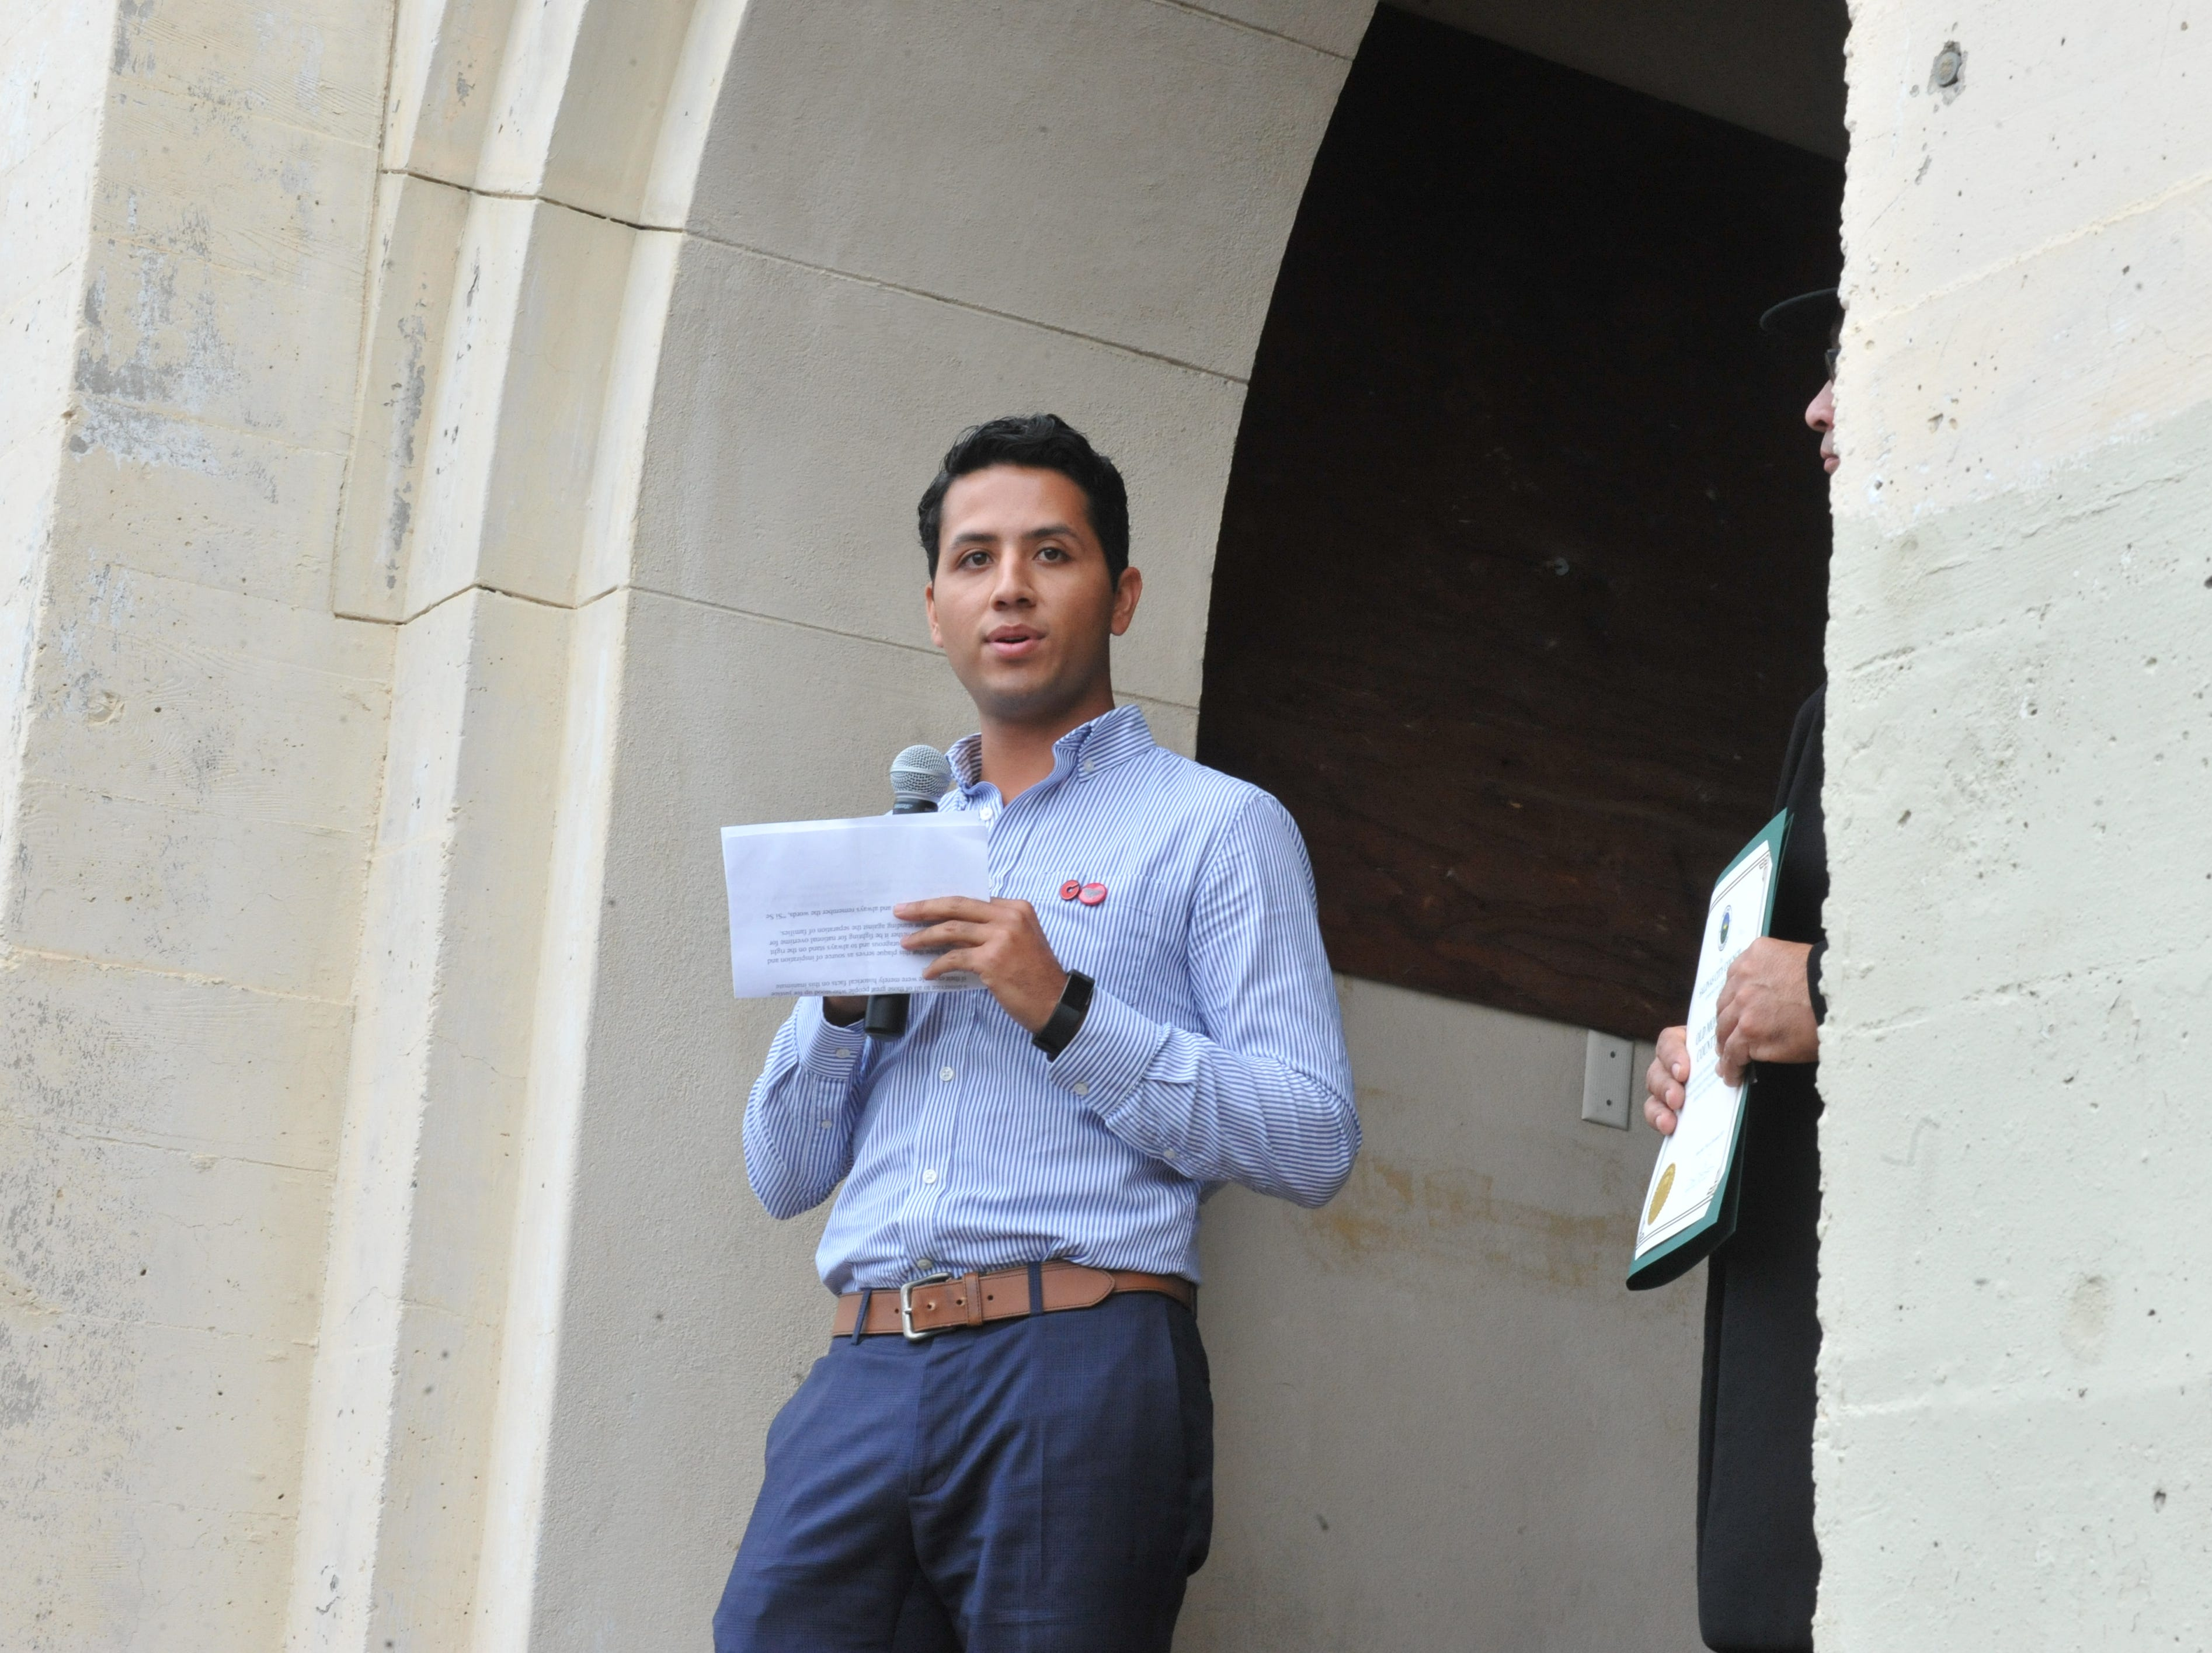 Andres Chavez, Cesar Chavez's grandson, addresses the audience at the plaque ceremony for the old Monterey County Jail.